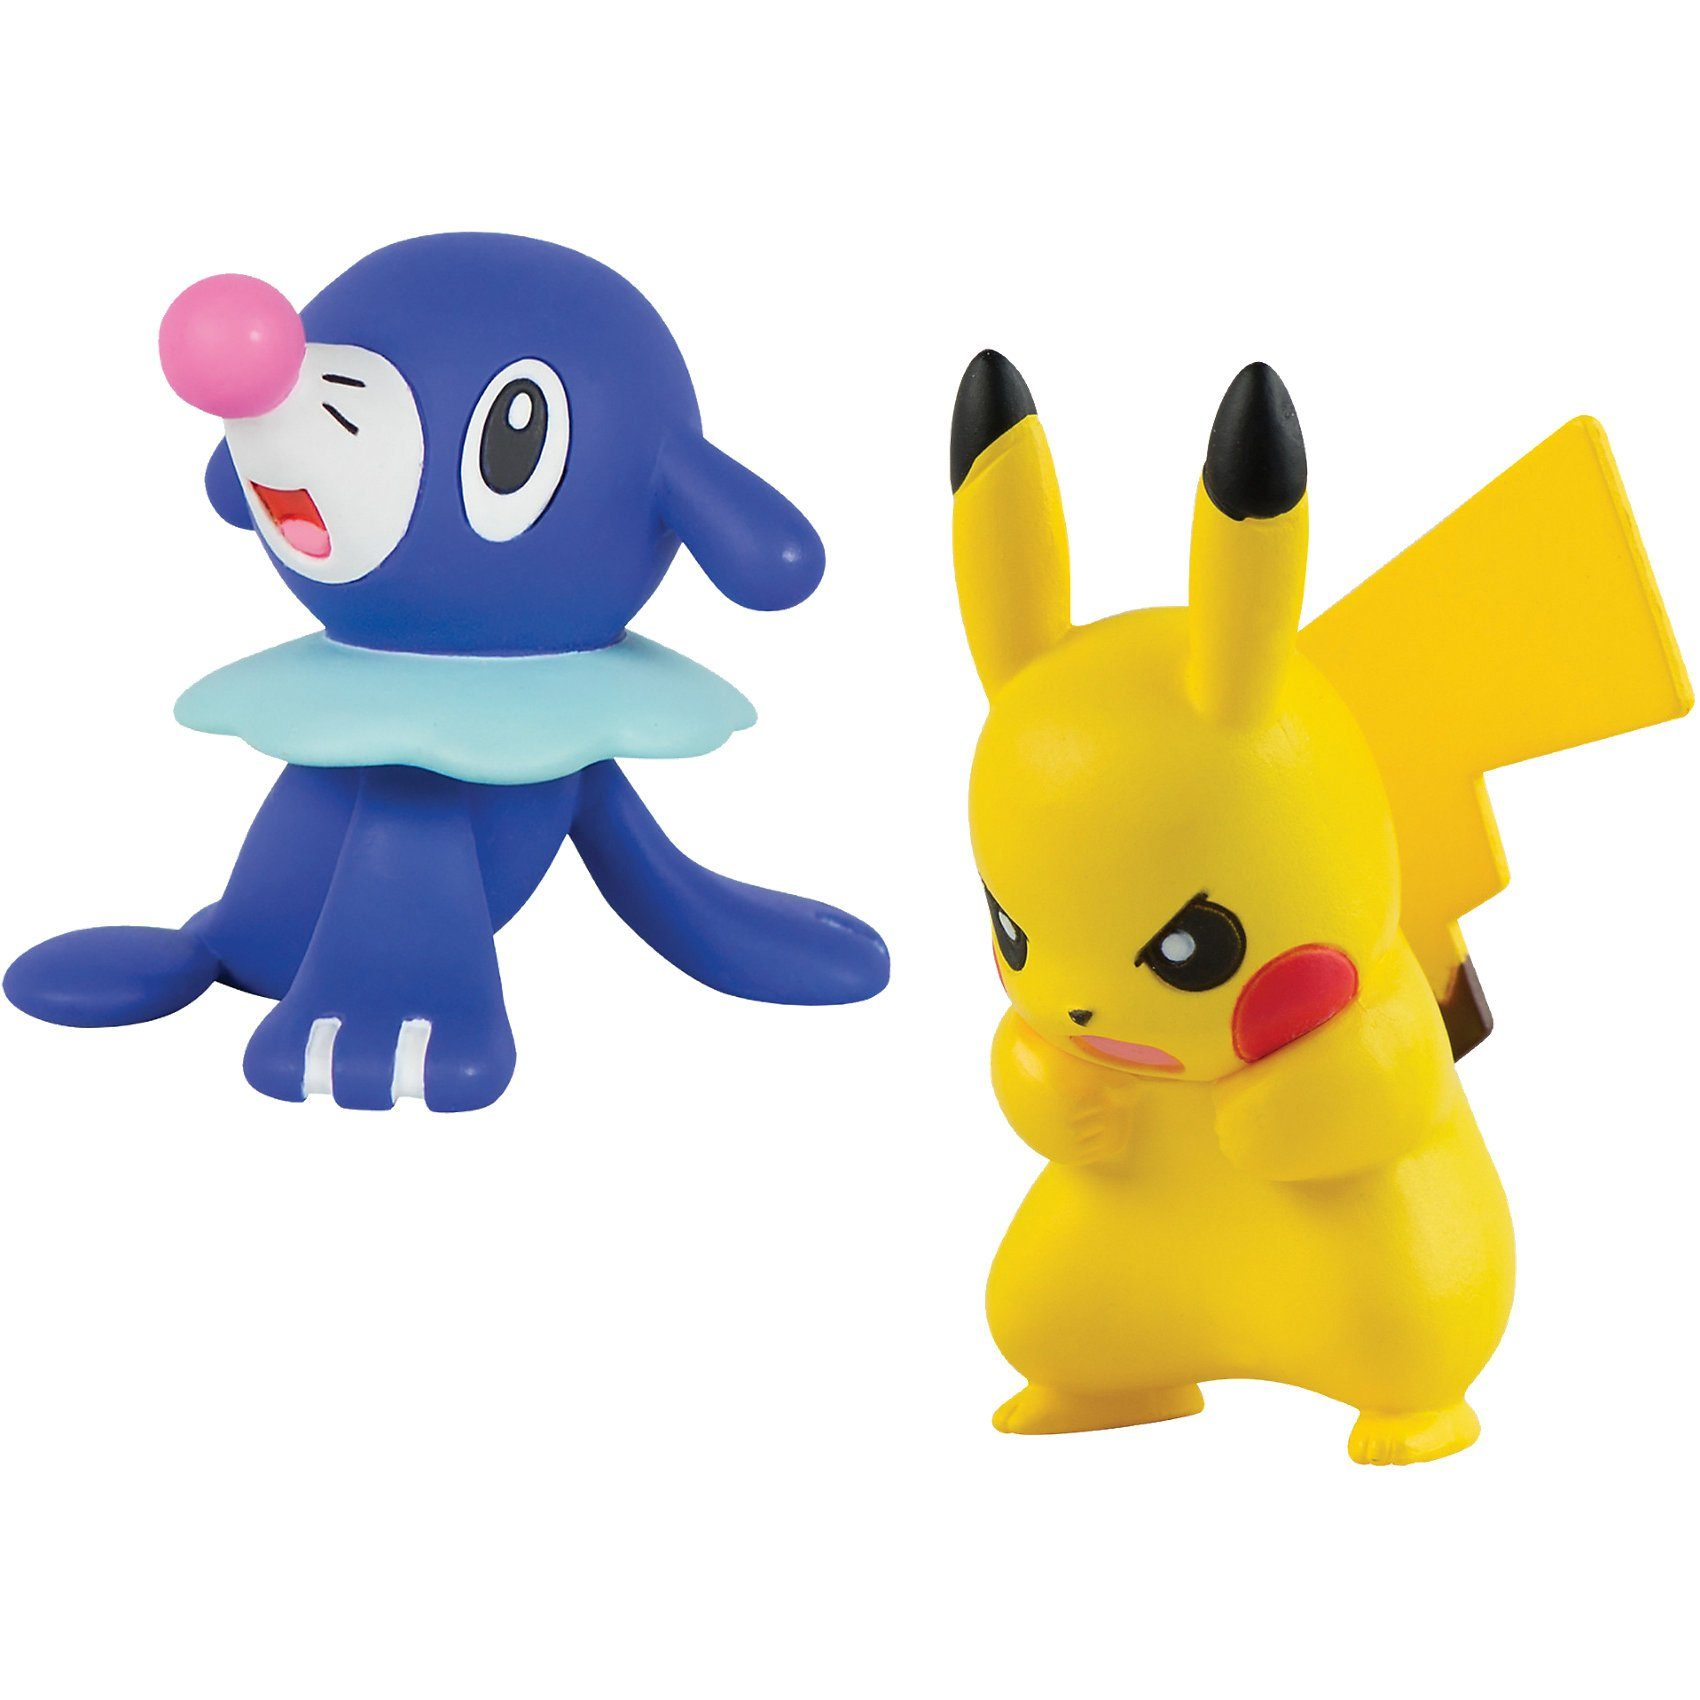 TOMY Pokémon 2 Actionfiguren - Pikachu vs Popplio